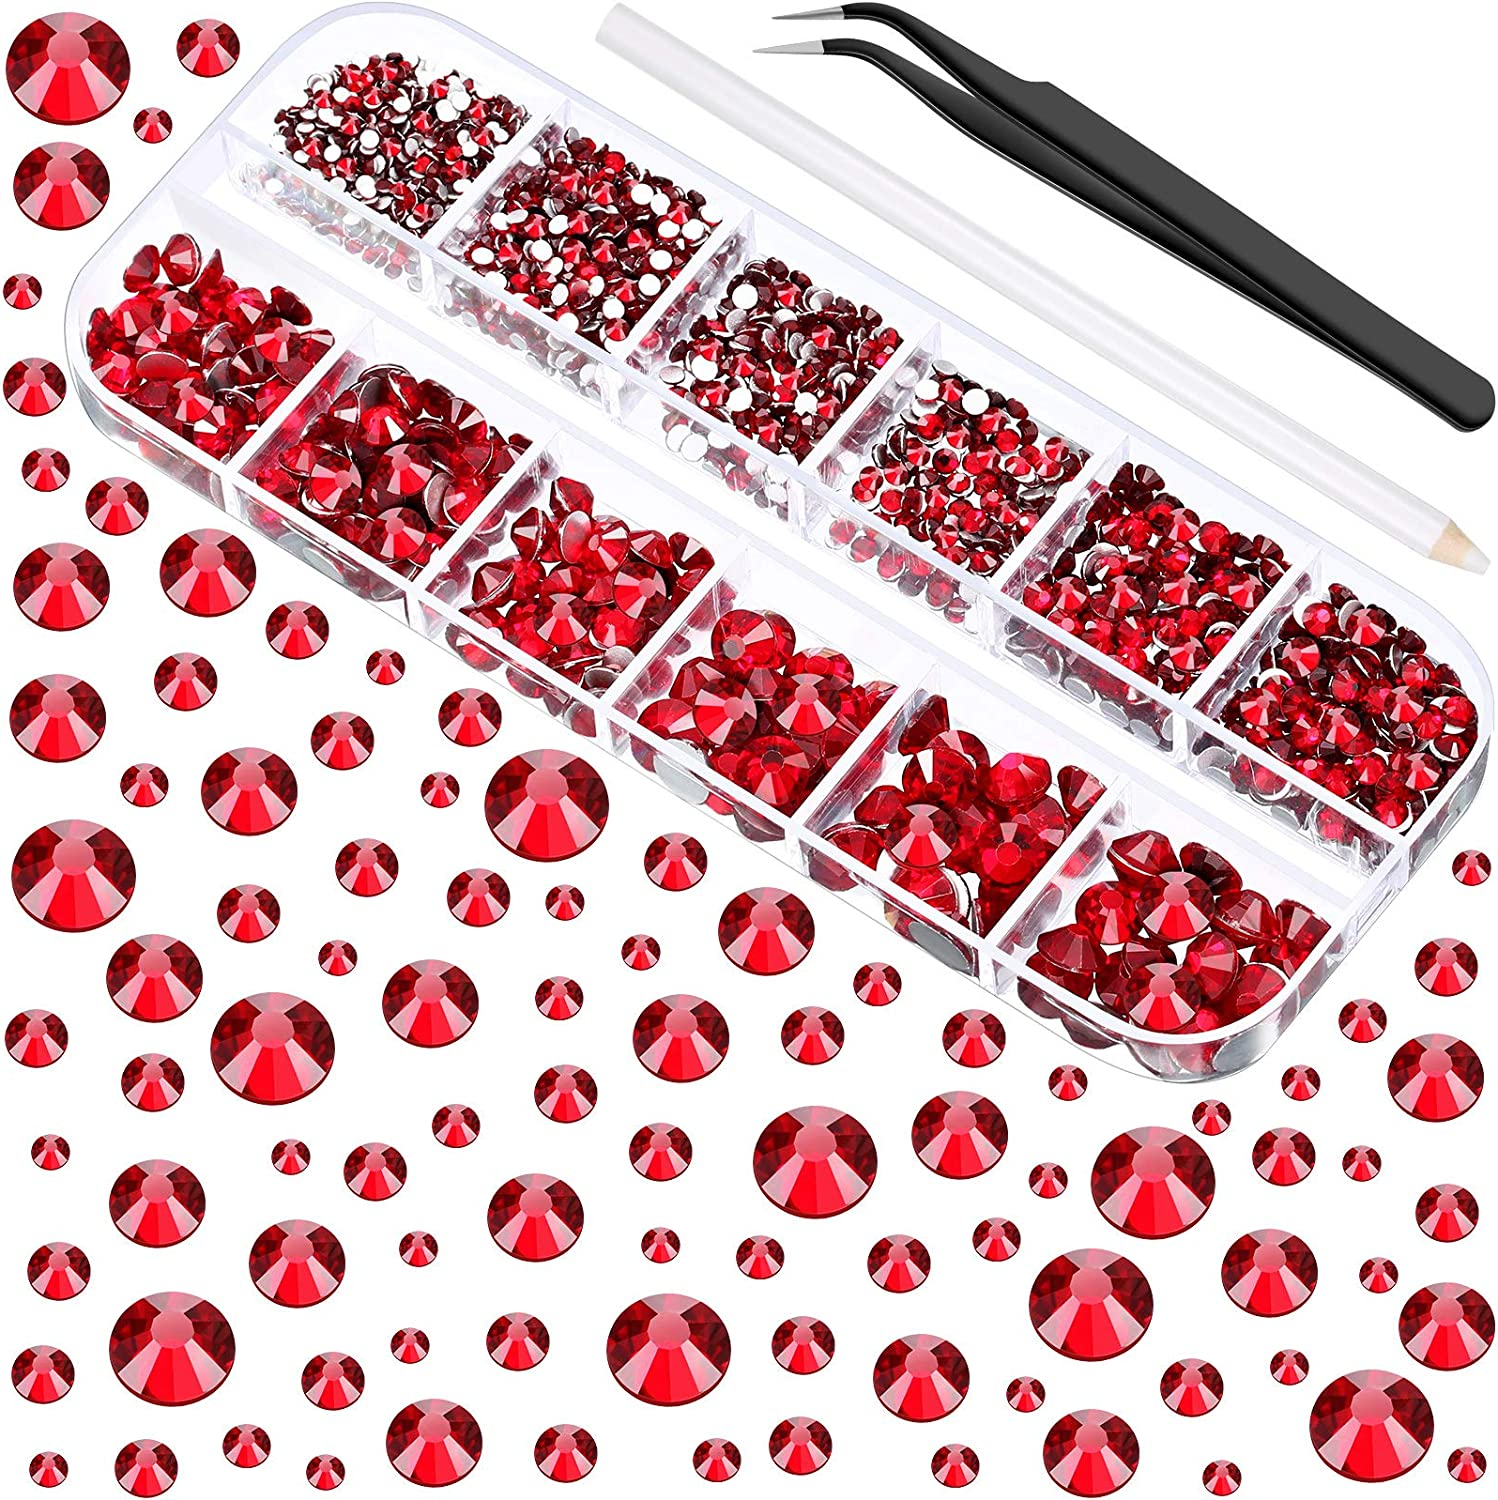 2000 Pieces Flat Back Gems Round Crystal Rhinestones 6 Sizes (1.5-6 mm) with Pick Up Tweezer and Rhinestones Picking Pen for Crafts Nail Face Art Clothes Shoes Bags DIY (Dark Red)